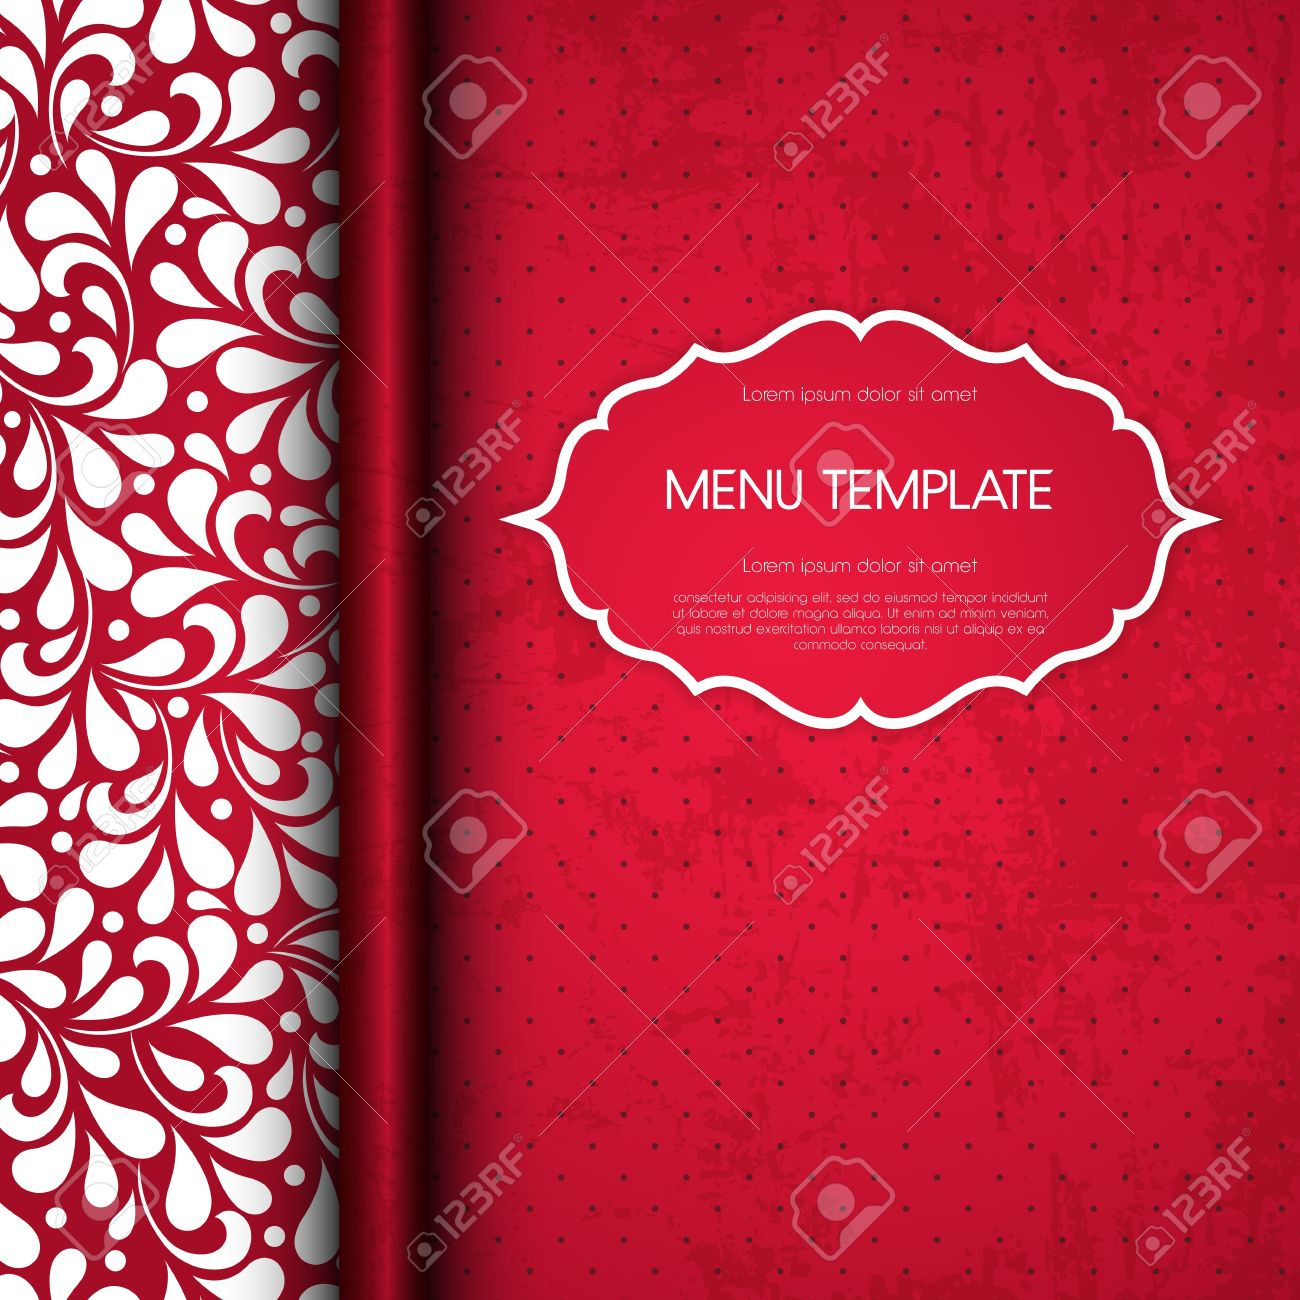 restaurant menu cover design royalty free cliparts, vectors, and